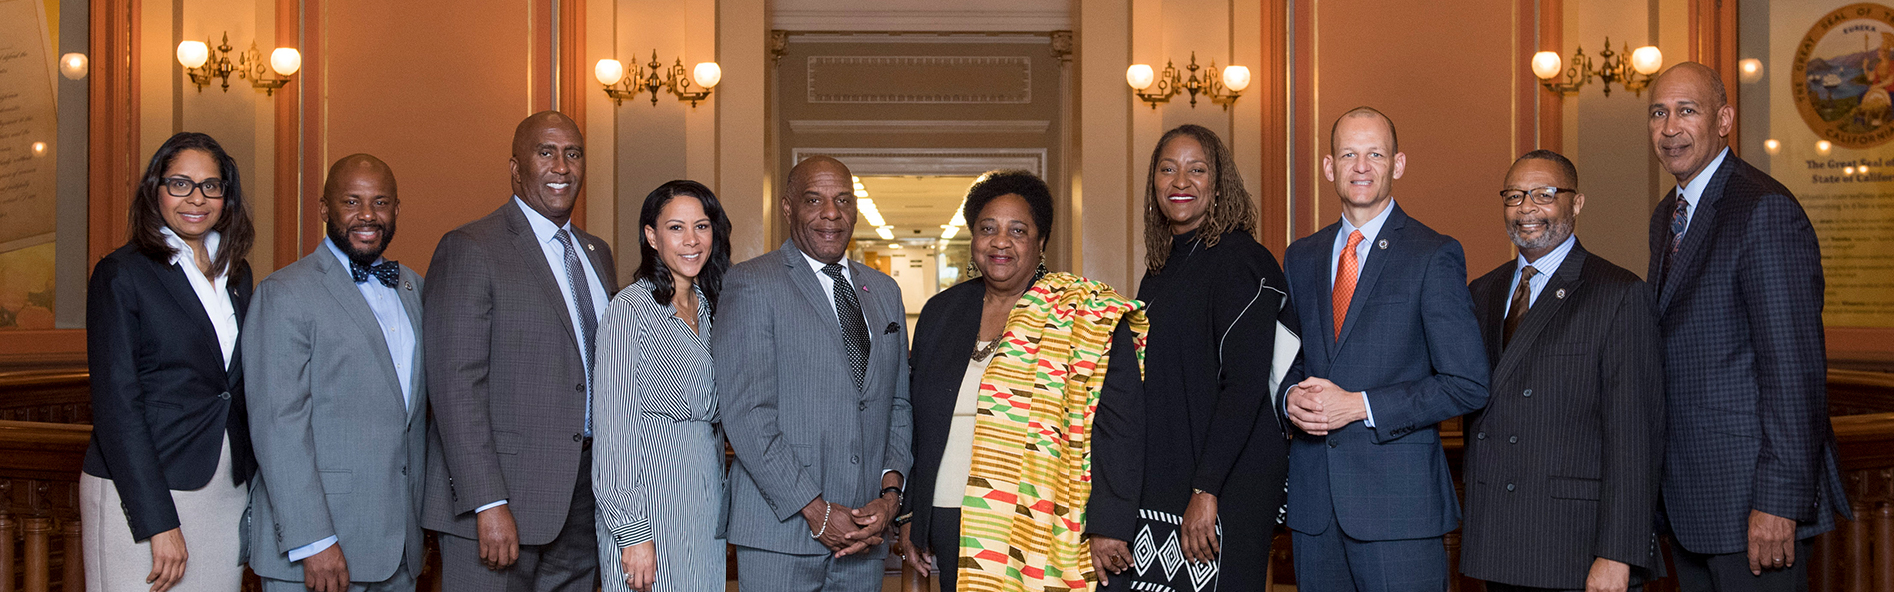 Curren California Legislative Black Caucus Members